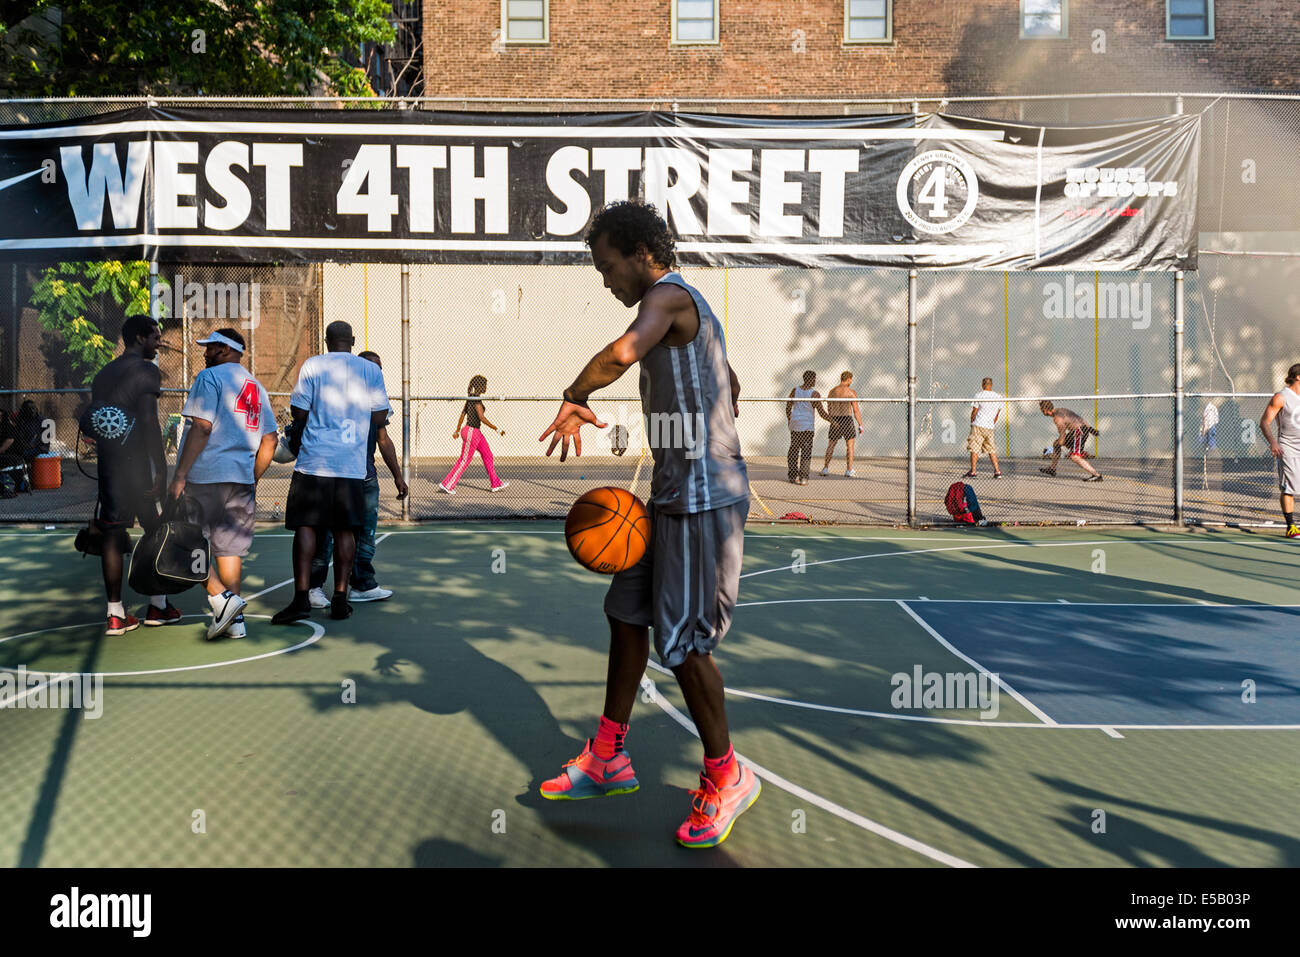 New York, NY 25 July 2014 - Young man practicing hoops at the West Fourth Street Basketball Courts ©Stacy Walsh - Stock Image